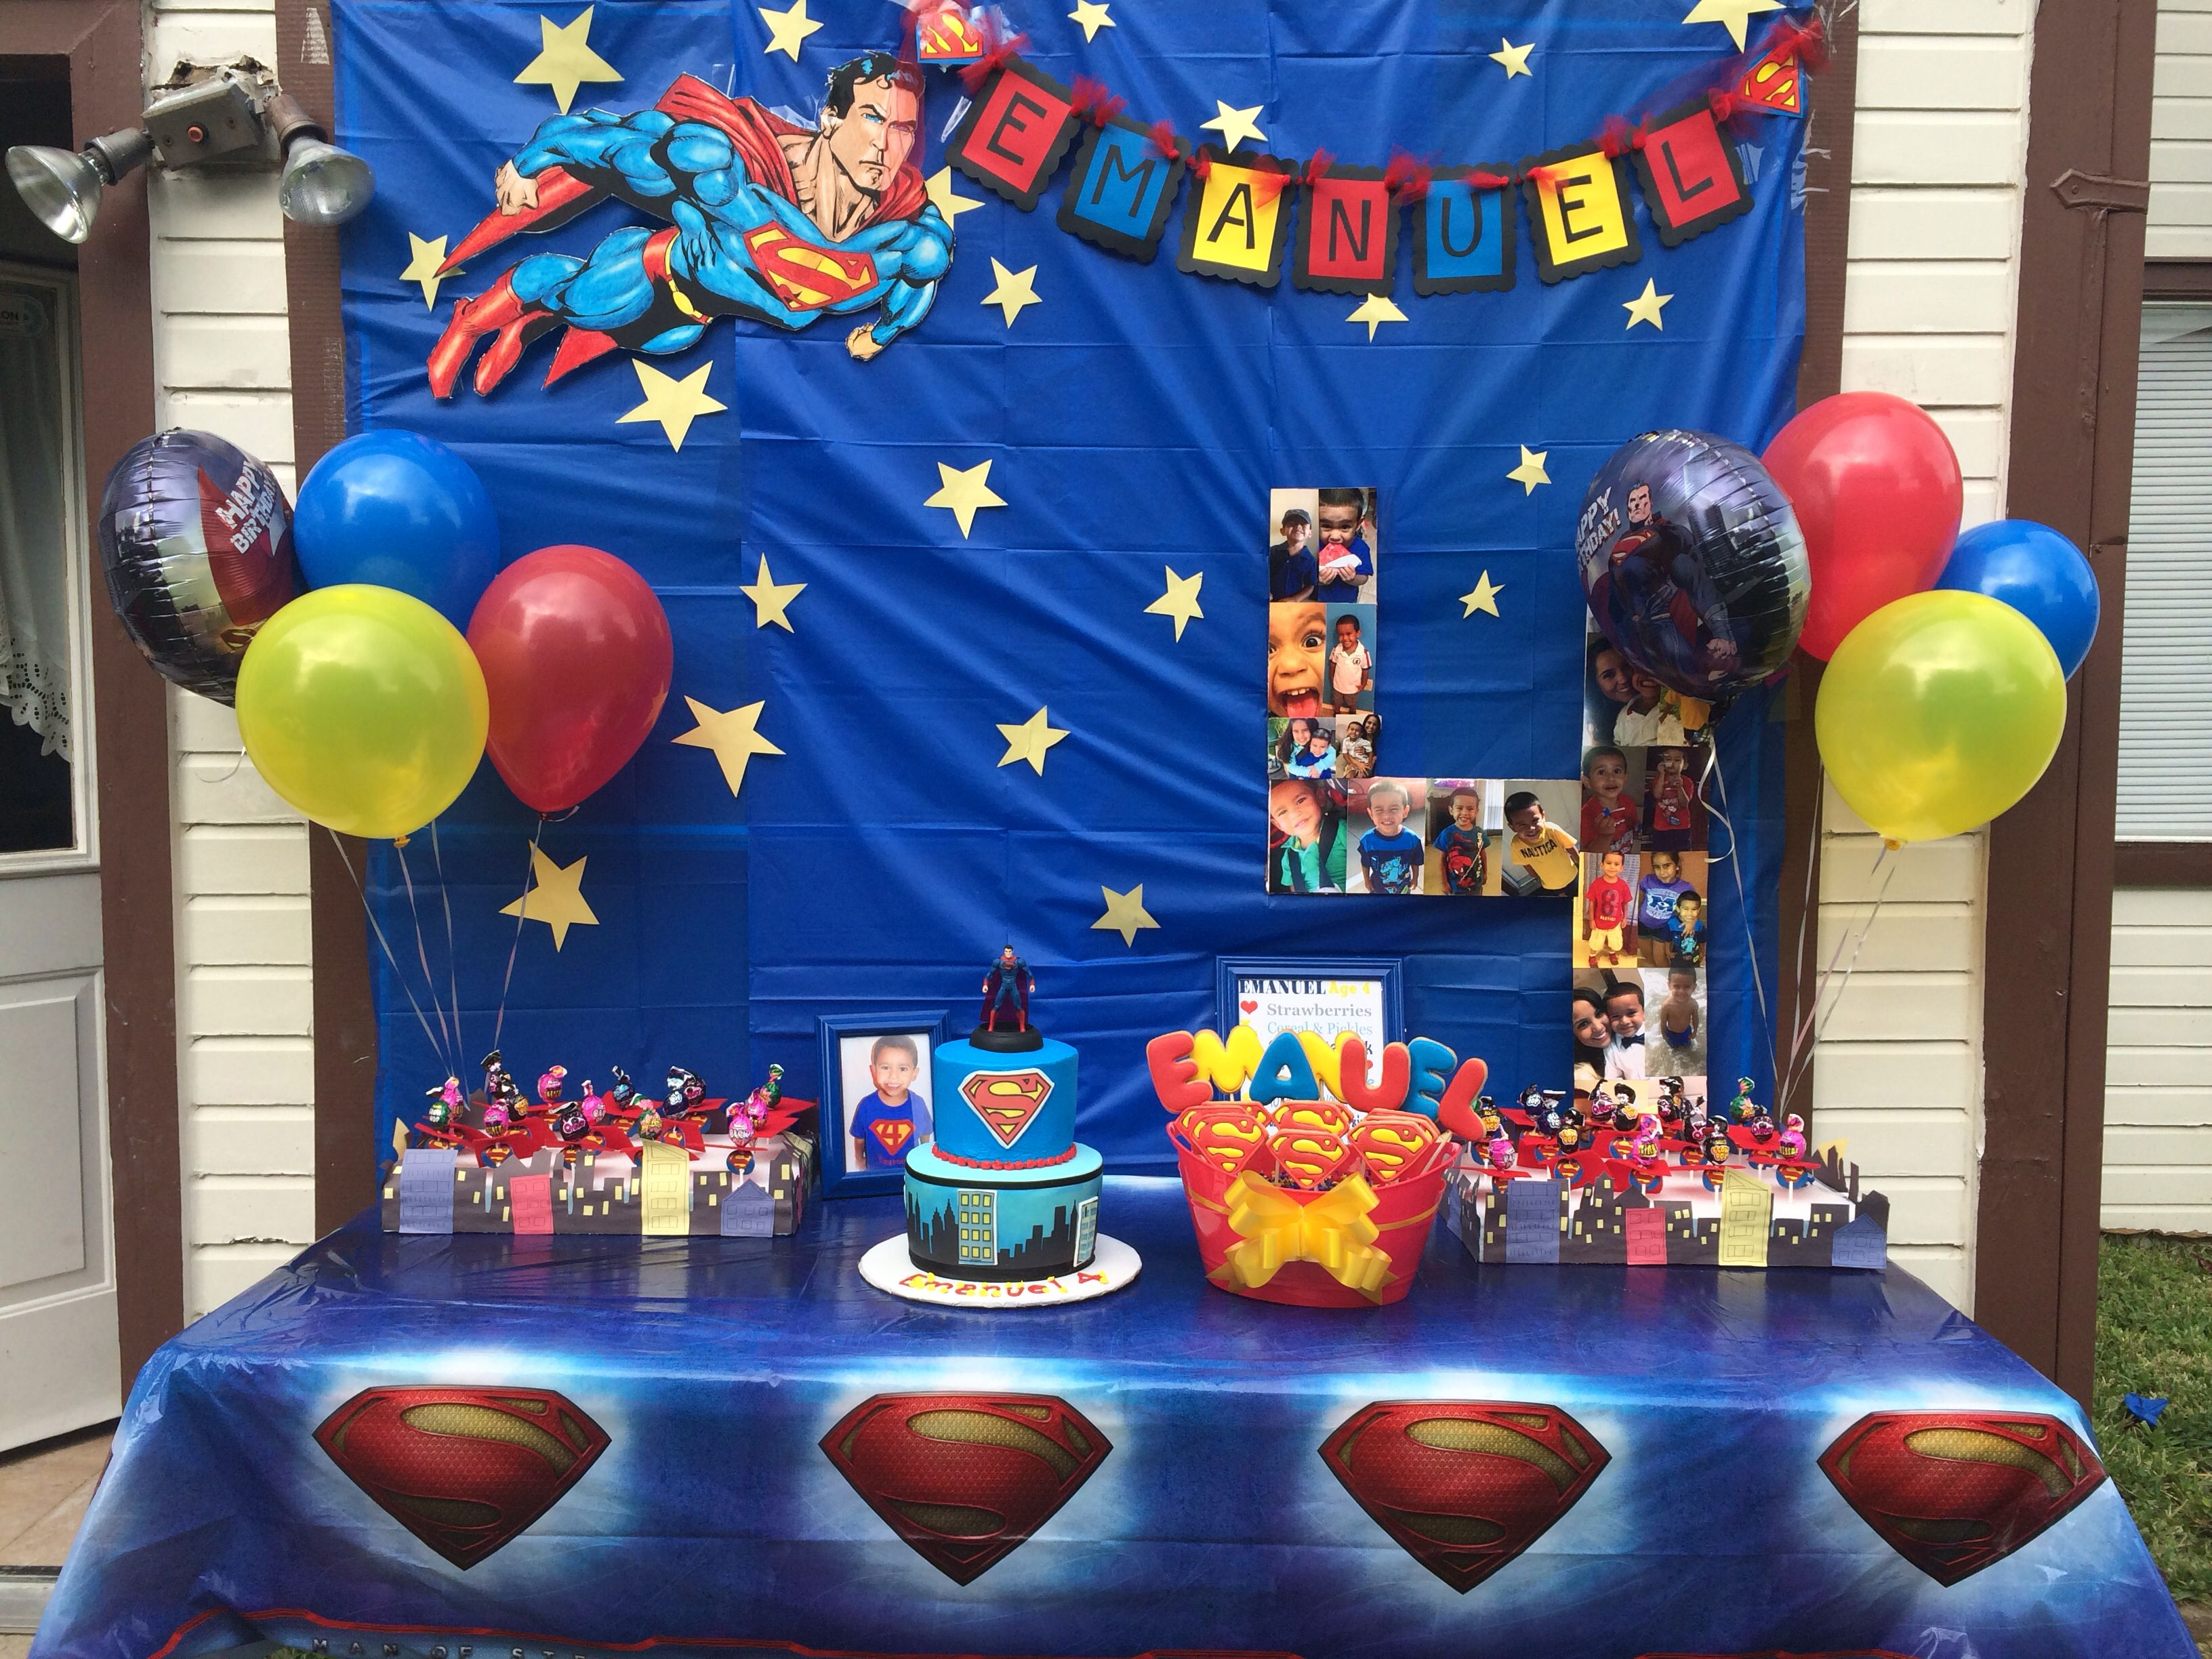 Birthday table decorations boy - 25 Best Ideas About Superman Party Theme On Pinterest Superhero Photo Booth Super Hero Birthday And Superhero Party